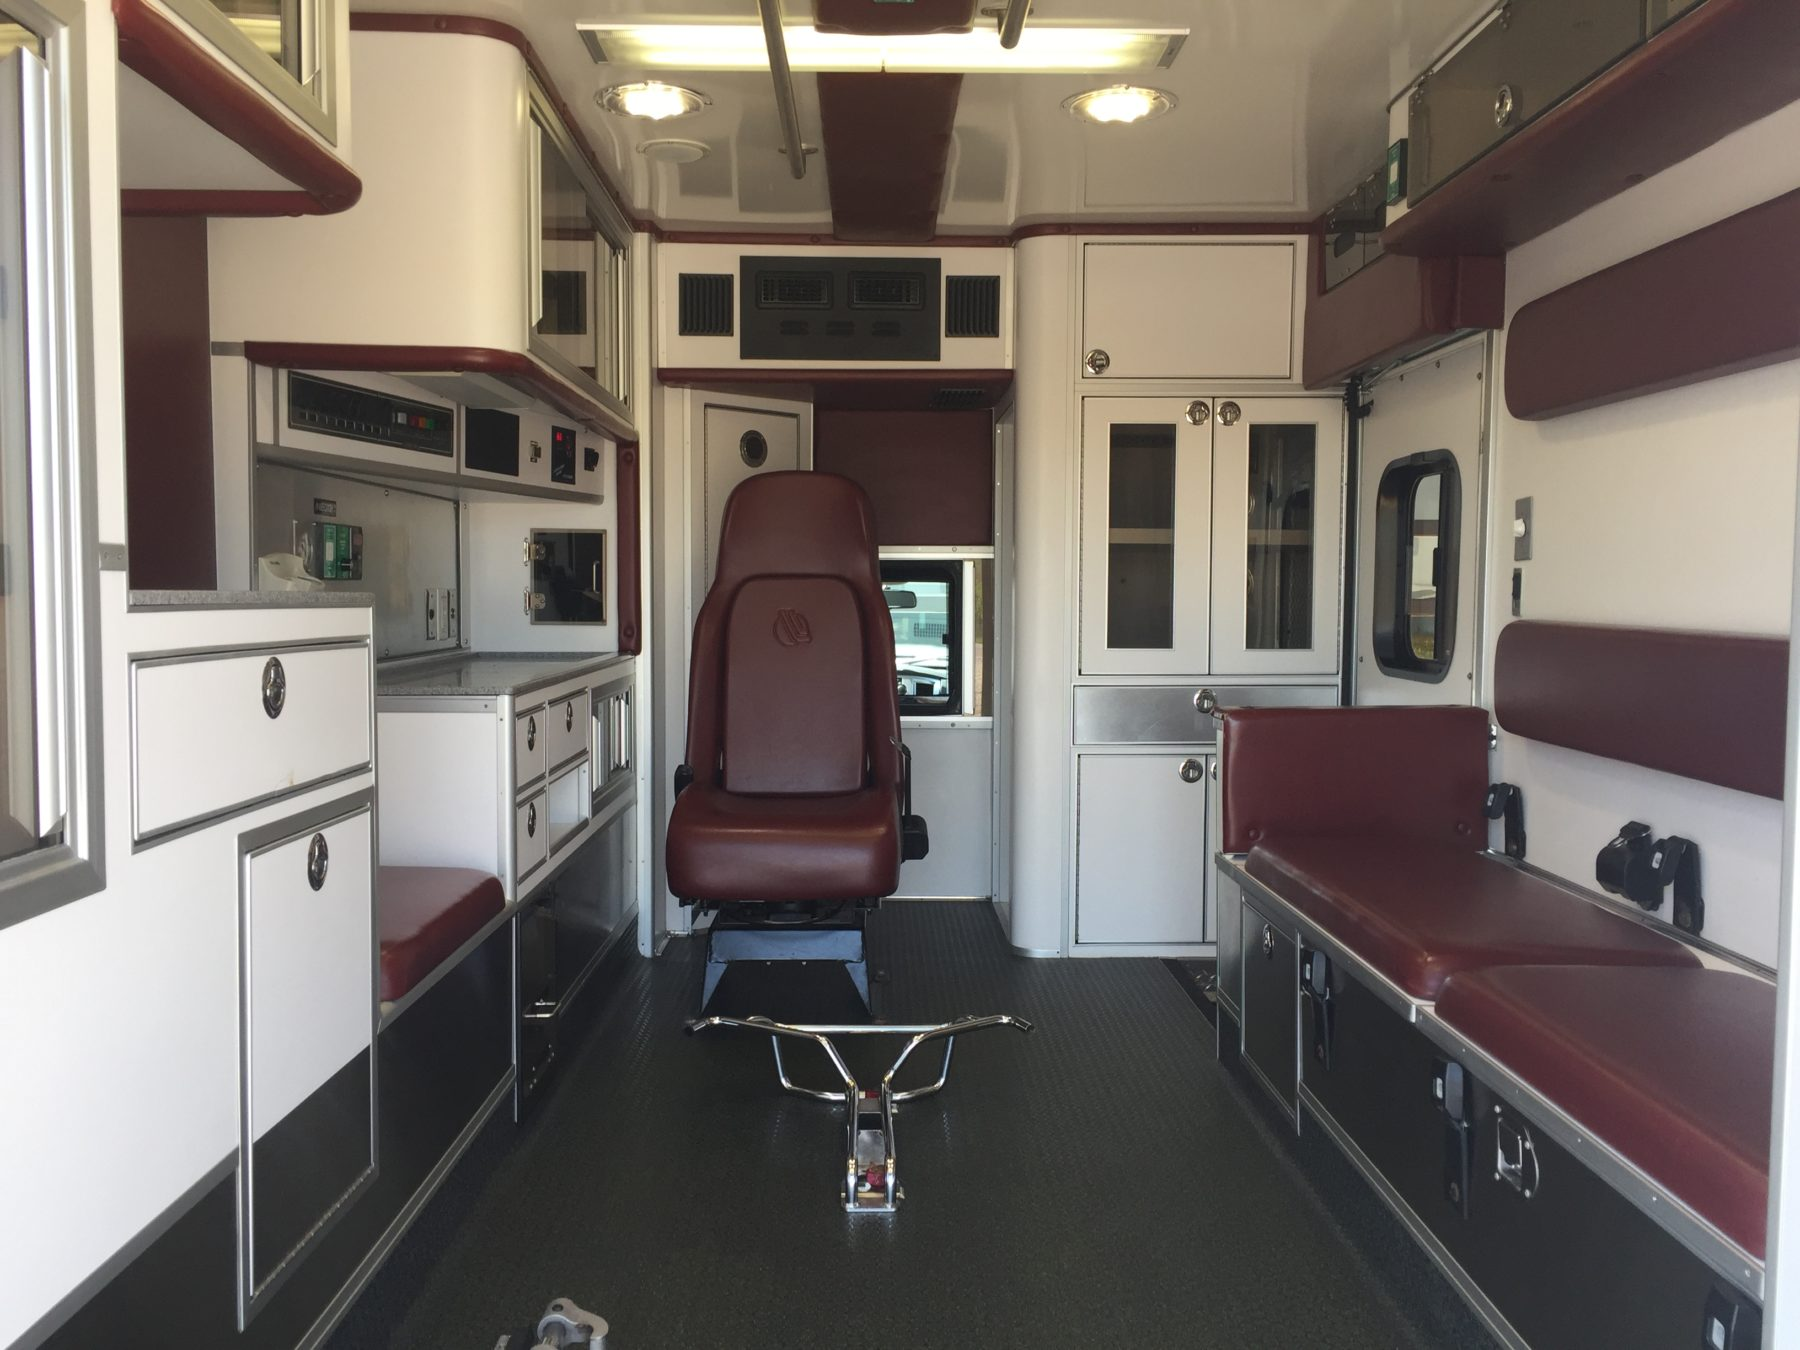 2009 Dodge 4500 Heavy Duty Ambulance For Sale – Picture 2